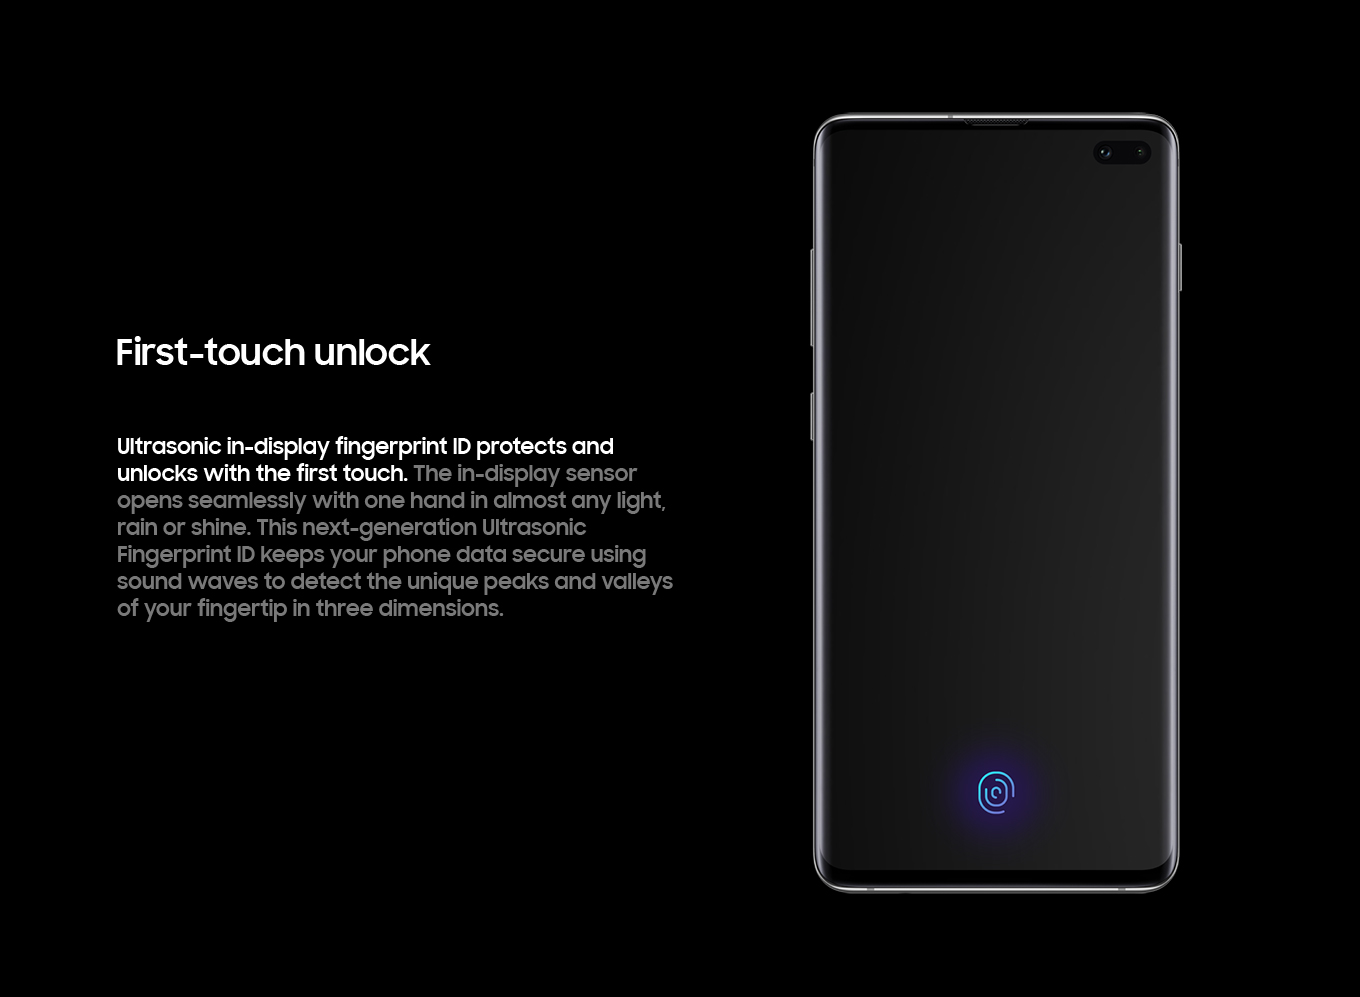 First-touch unlock. Ultrasonic in-display fingerprint ID protects and unlocks with the first touch.